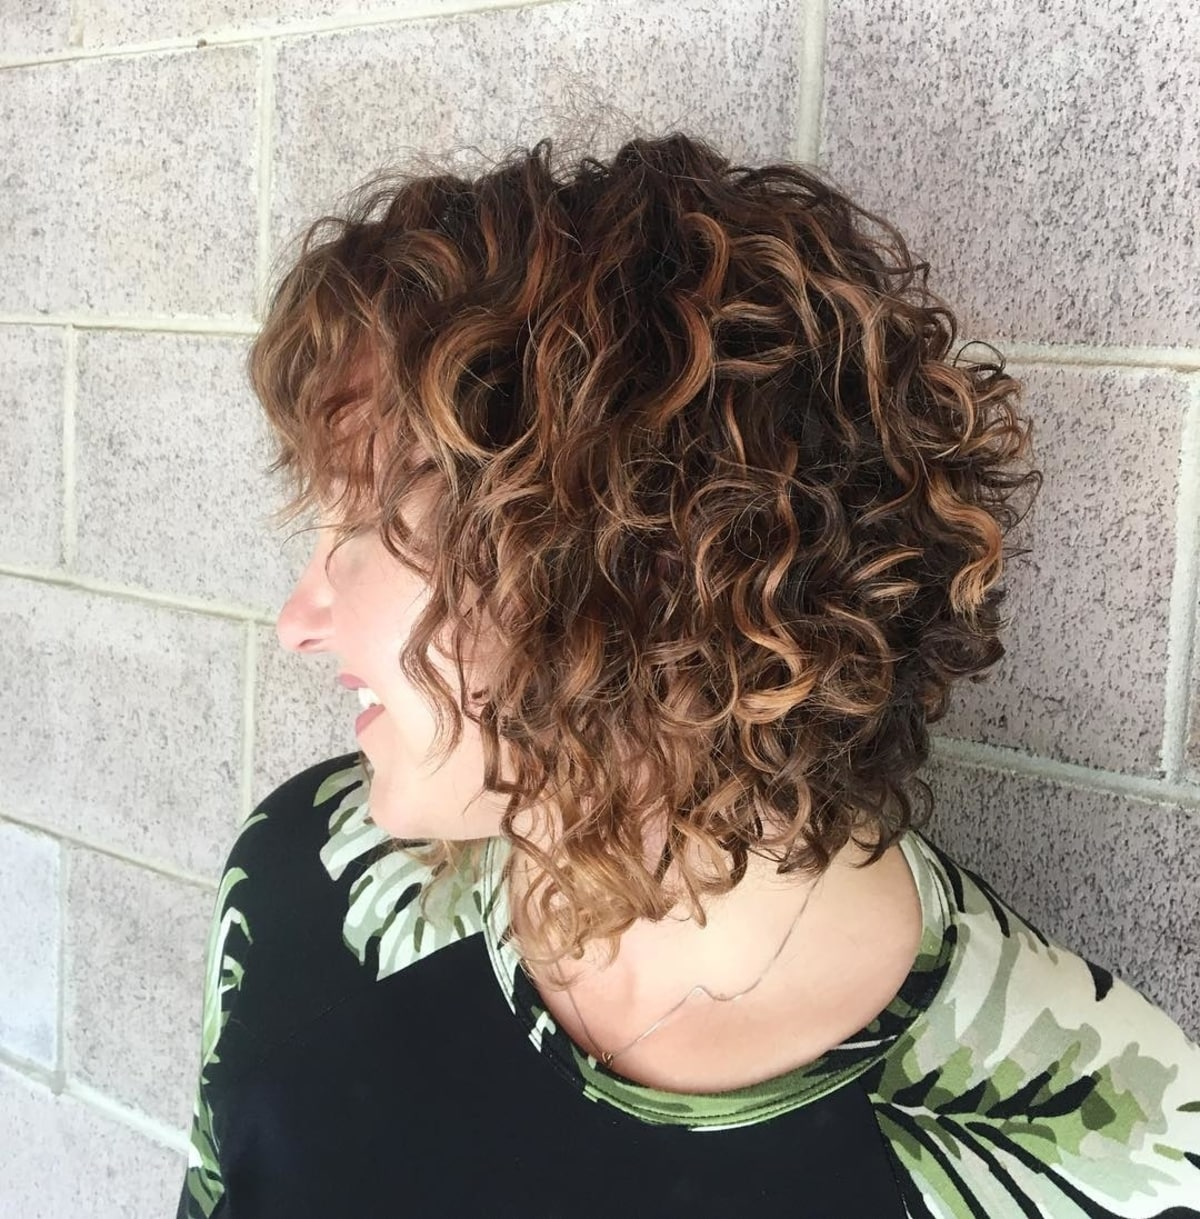 19 Best Curly Bob with Bangs for the Most Flattering Haircut & Hairstyle